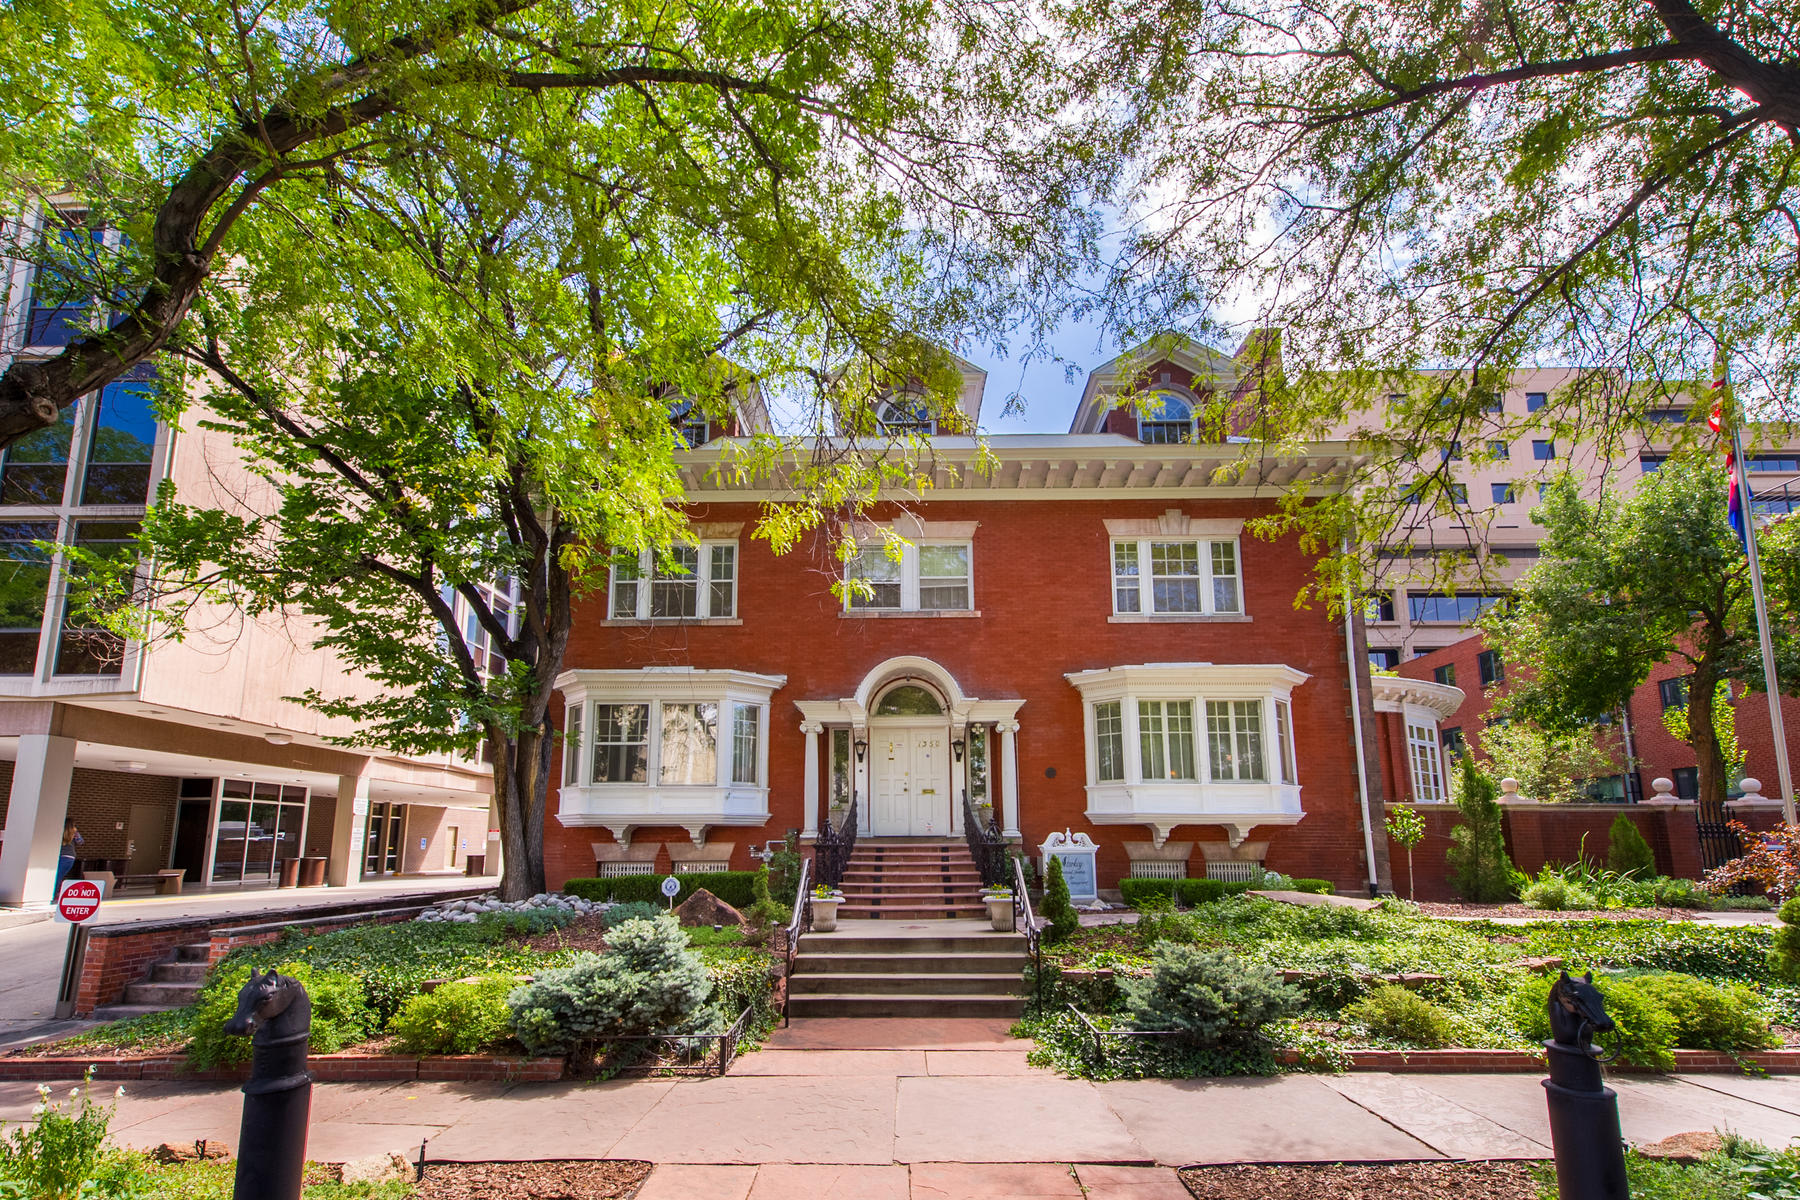 Single Family Home for Active at Historic Denver Landmark! 1350 n Logan Street Denver, Colorado 80203 United States